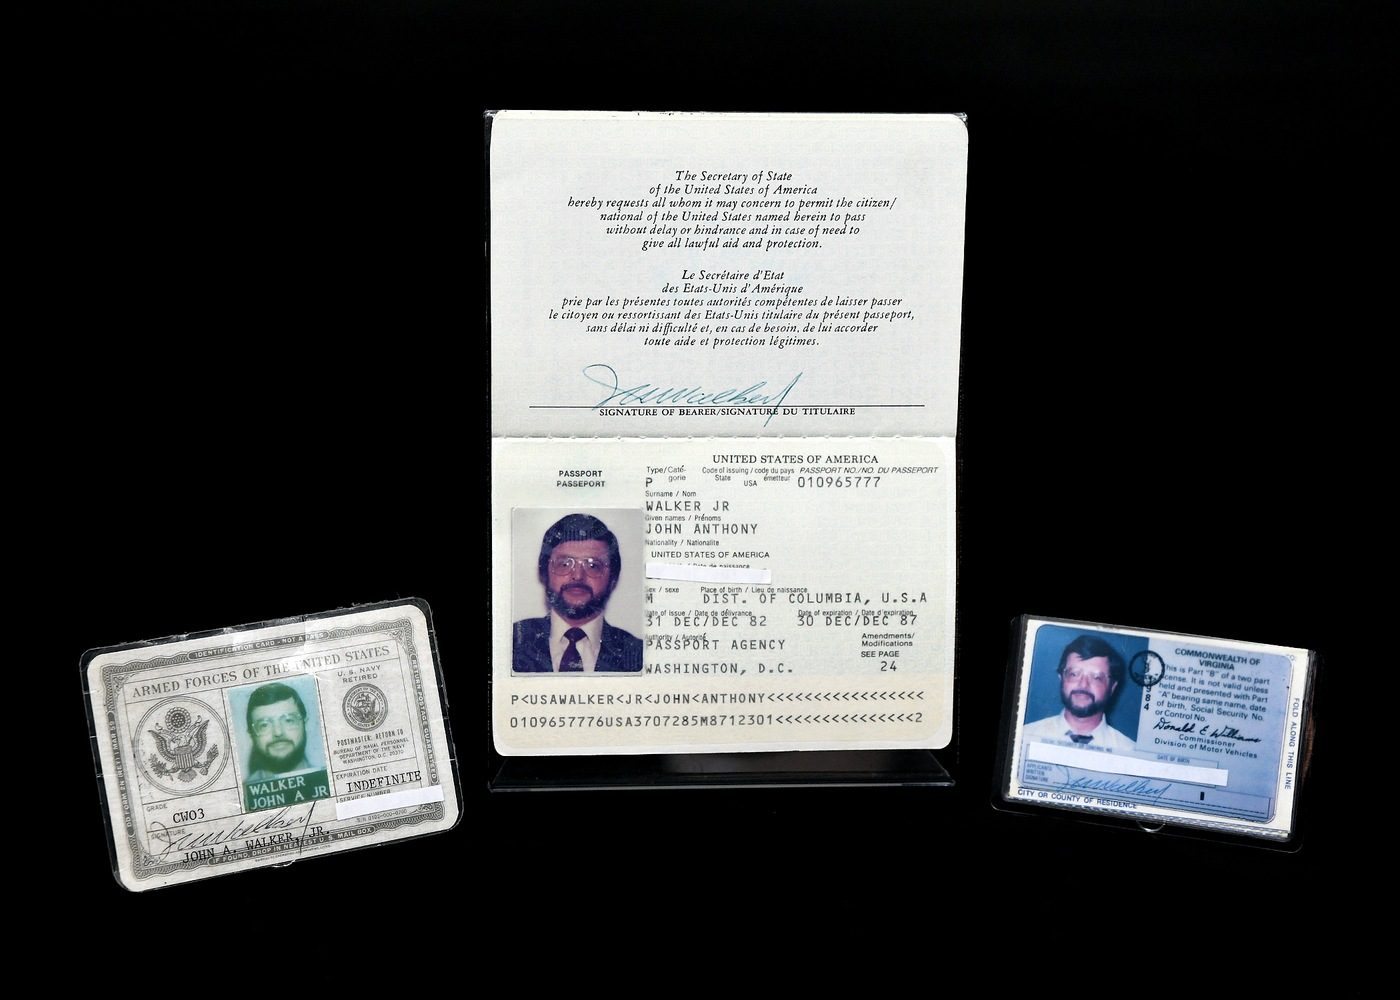 Photo of identification documents used by John Anthony Walker, Jr., including a driver's license, U.S. passport, and military ID. In 1985, Walker was arrested for selling U.S. secrets to the Soviet Union